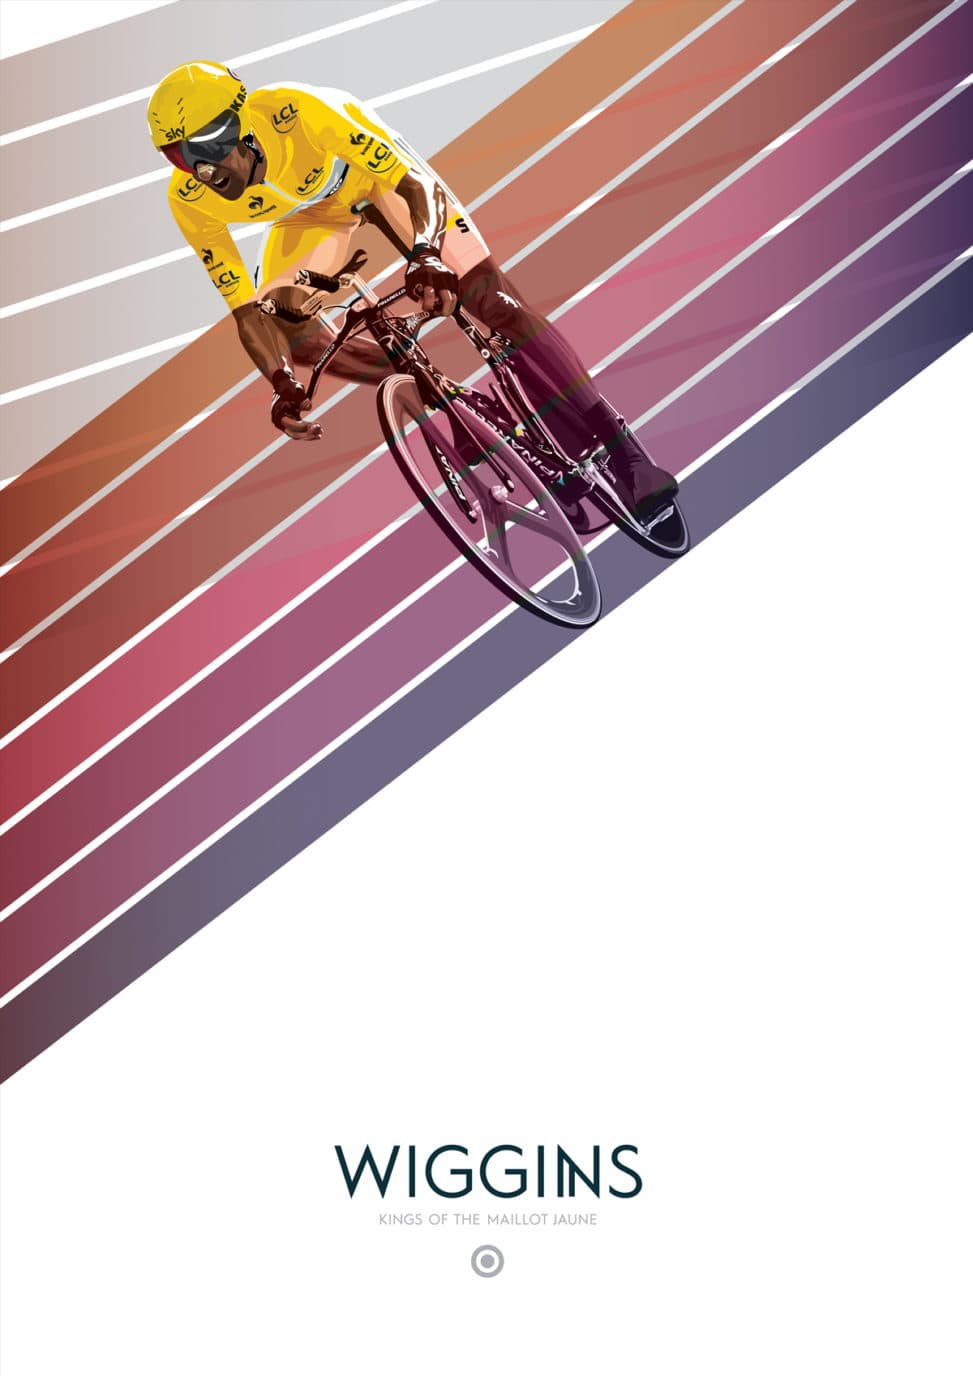 KINGS OF THE MAILLOT JAUNE - WIGGINS